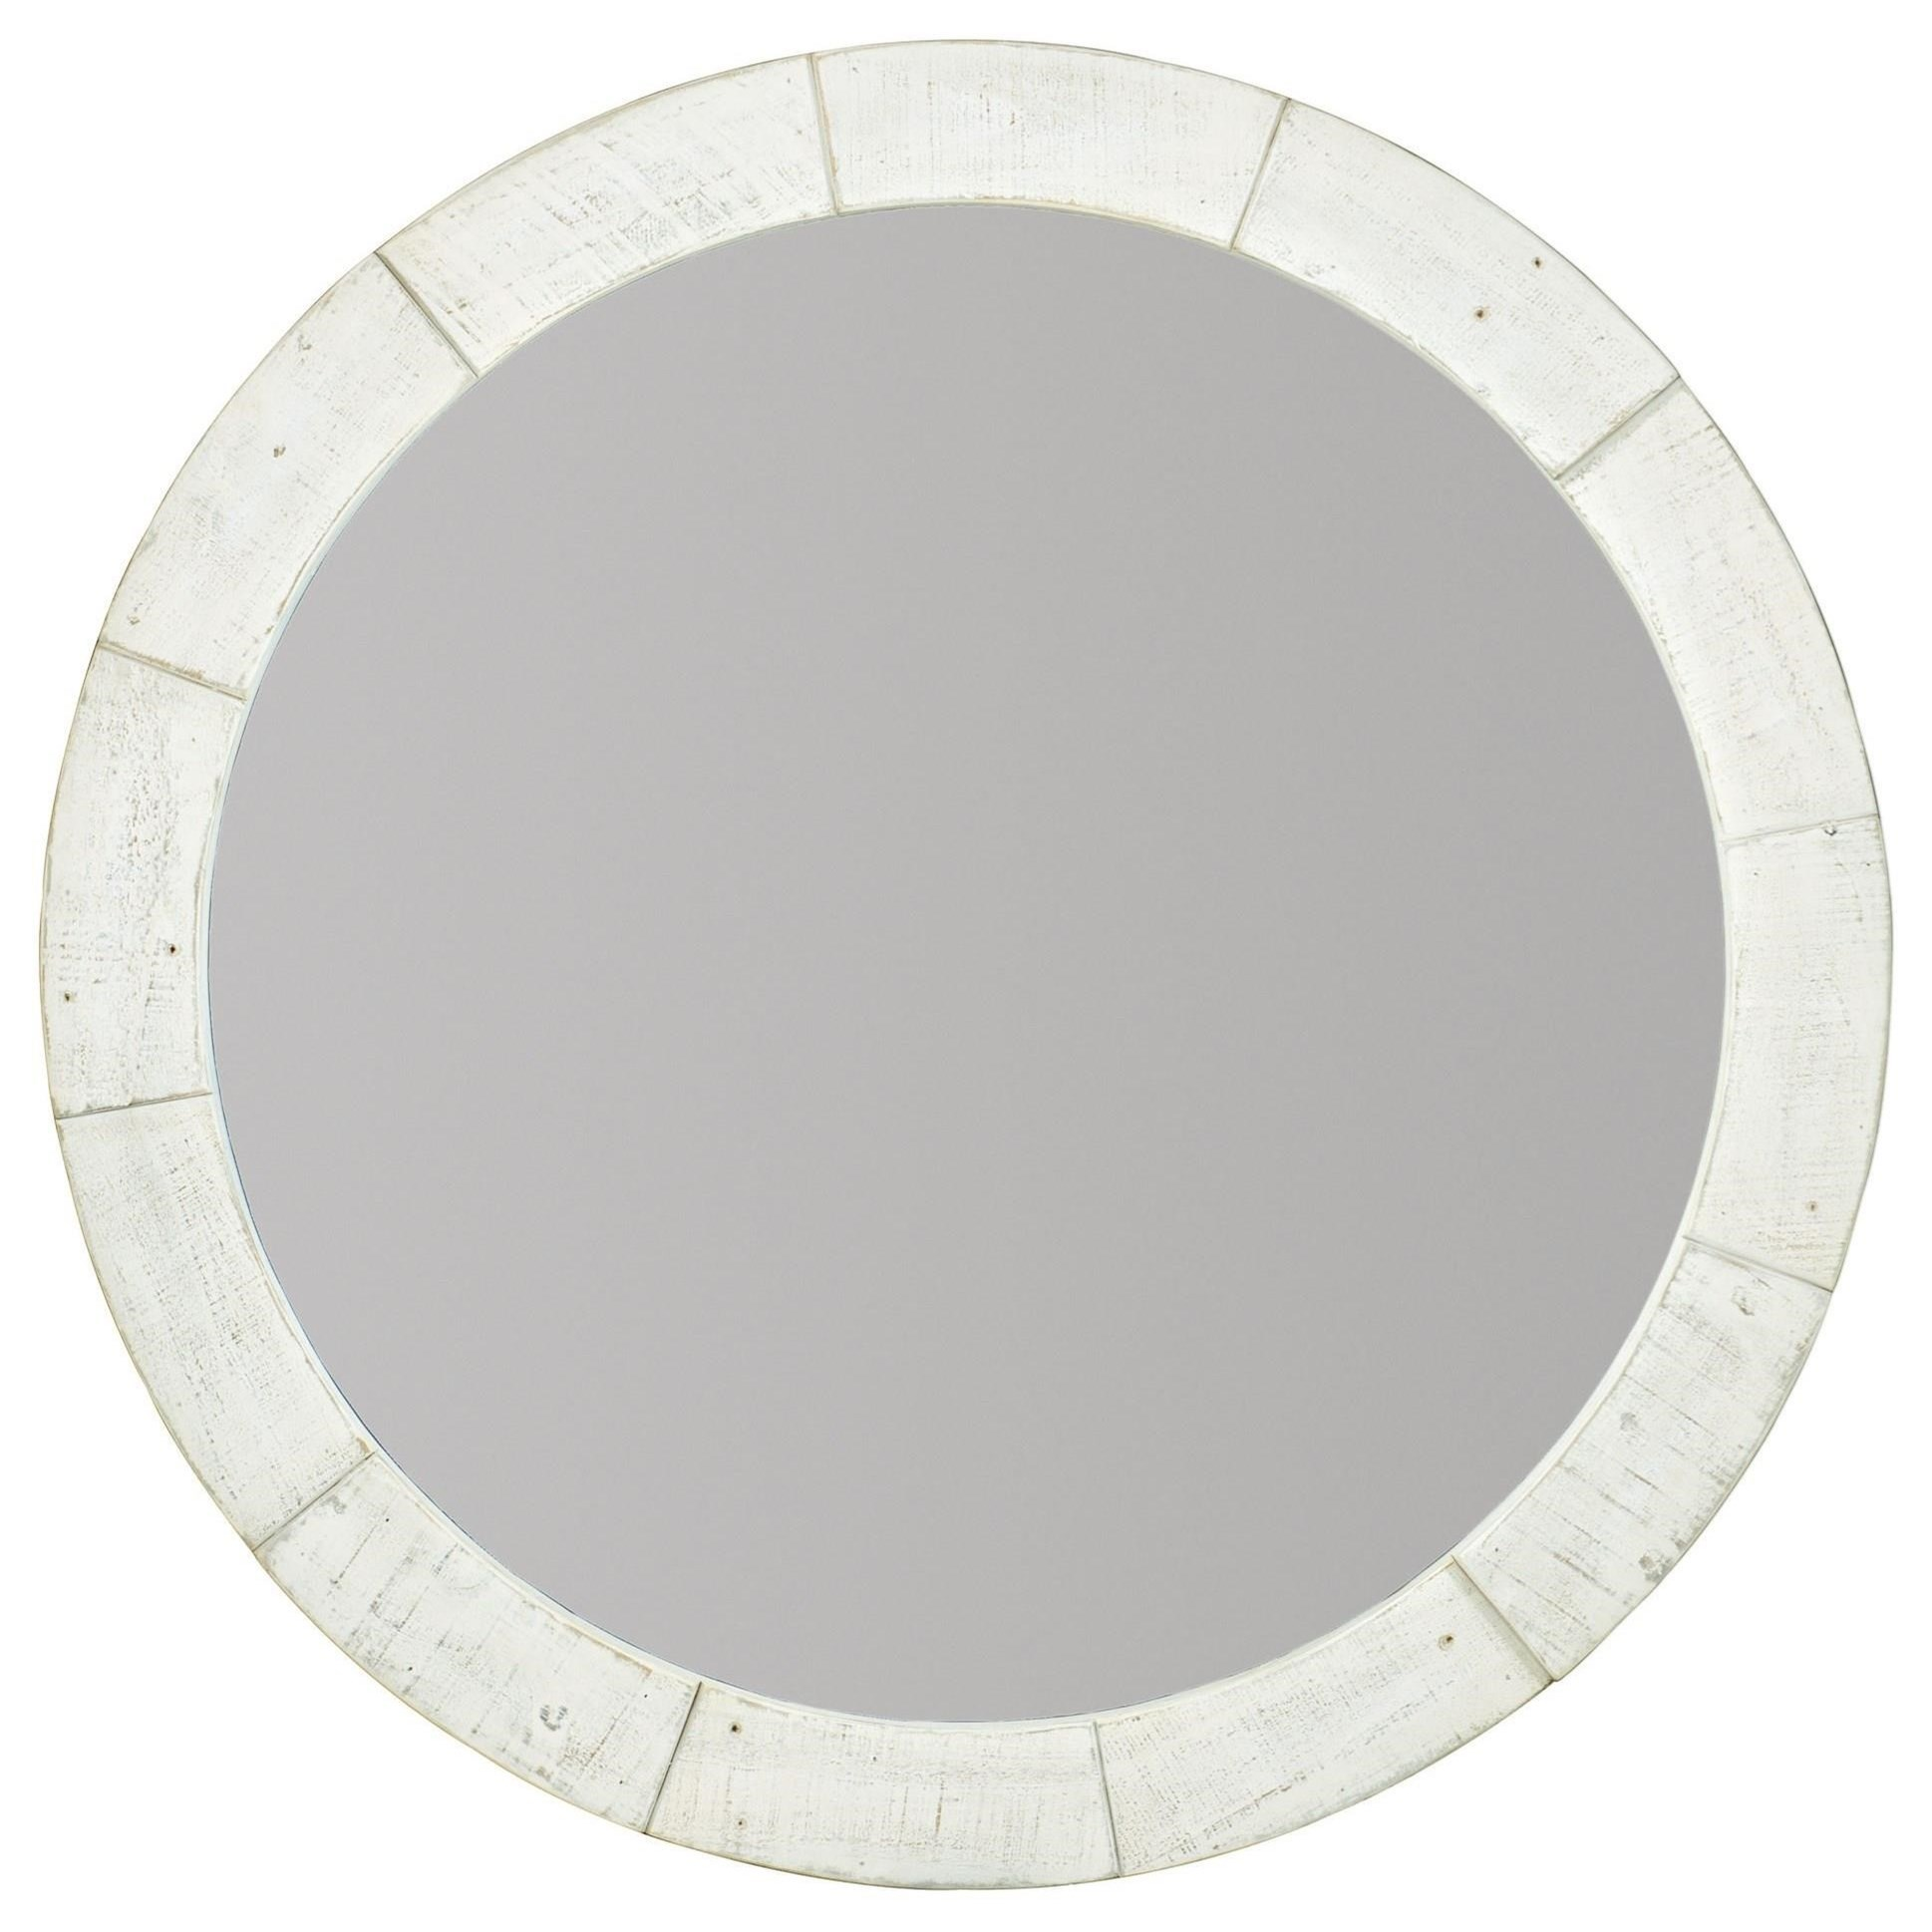 Loft - Highland Park Piper Round Mirror by Bernhardt at Fisher Home Furnishings